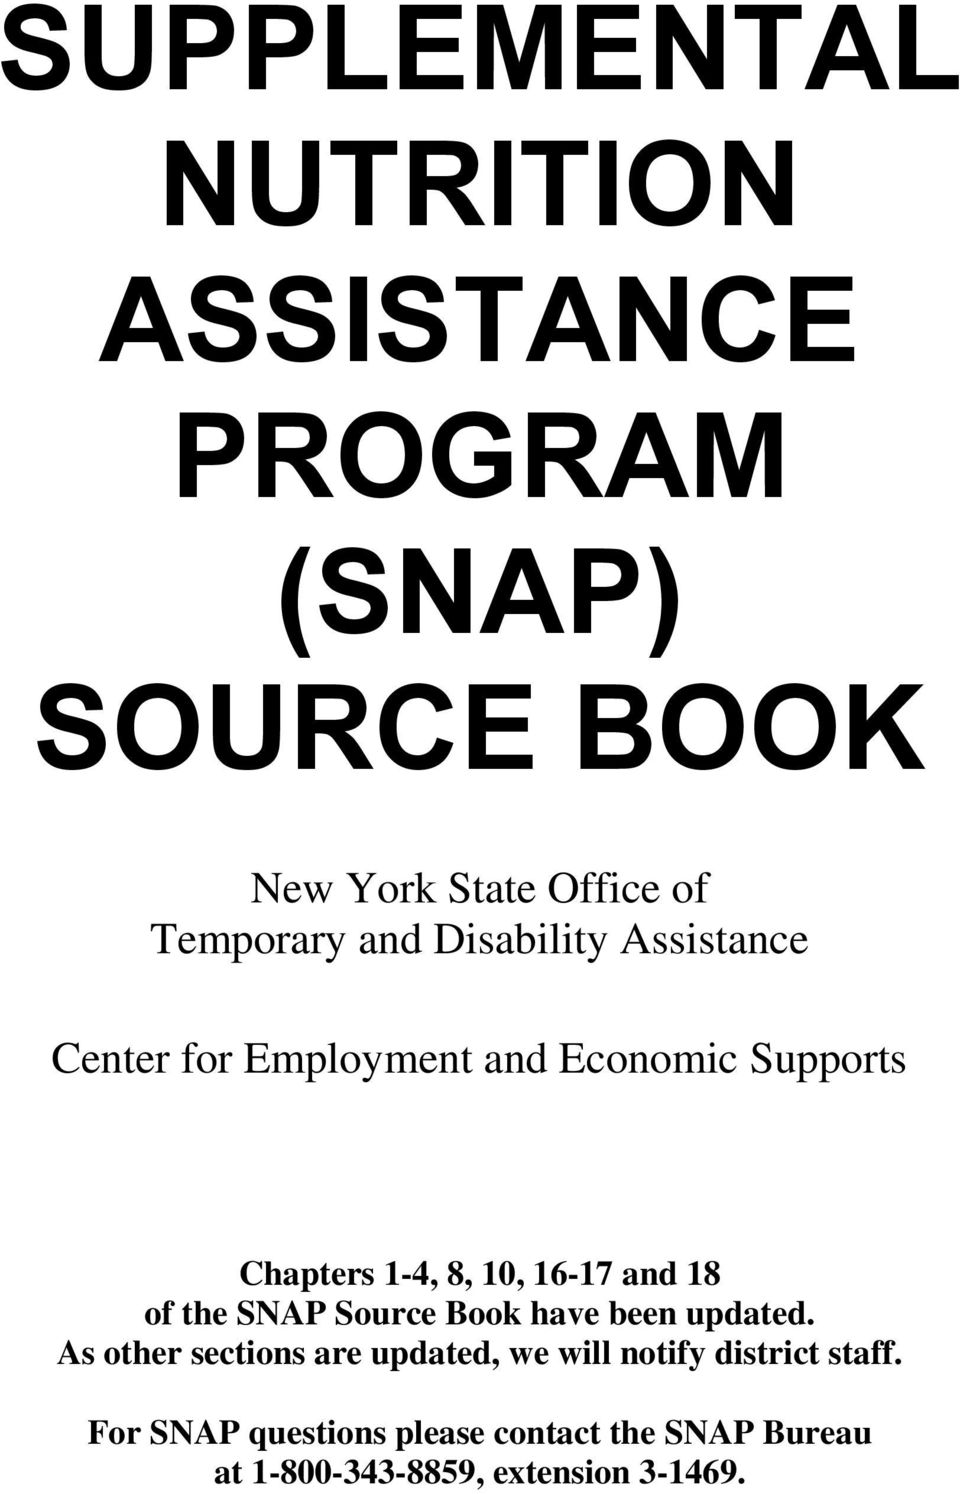 and 18 of the SNAP Source Book have been updated.